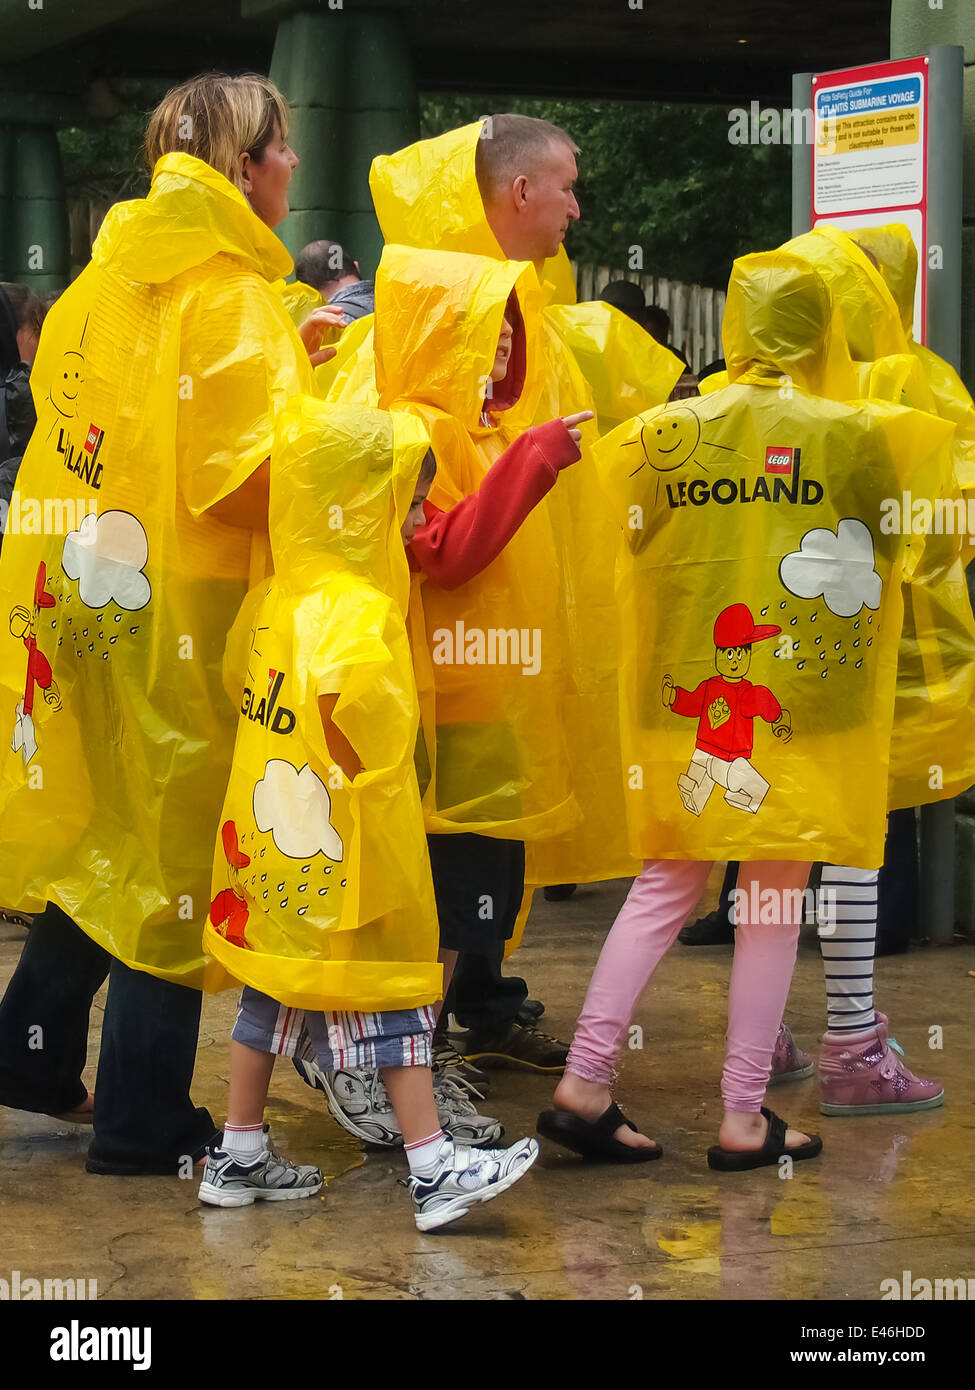 Visitors to legoland windsor wearing disposable waterproof ponchos on a rainy day - Stock Image